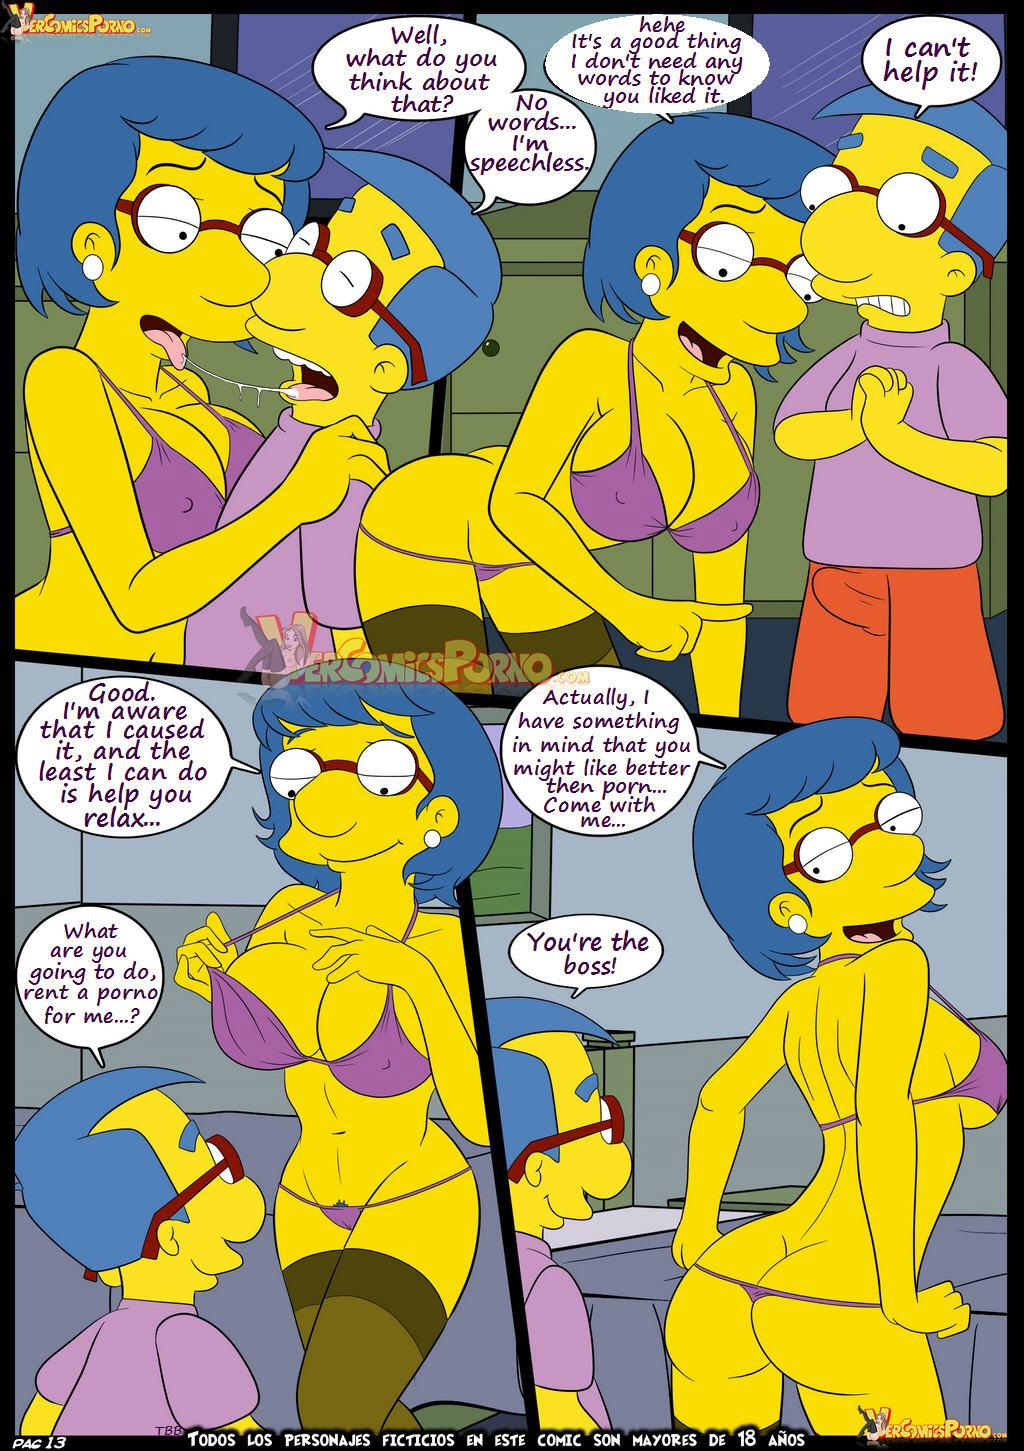 14 39 - The Simpsons. Part 6.